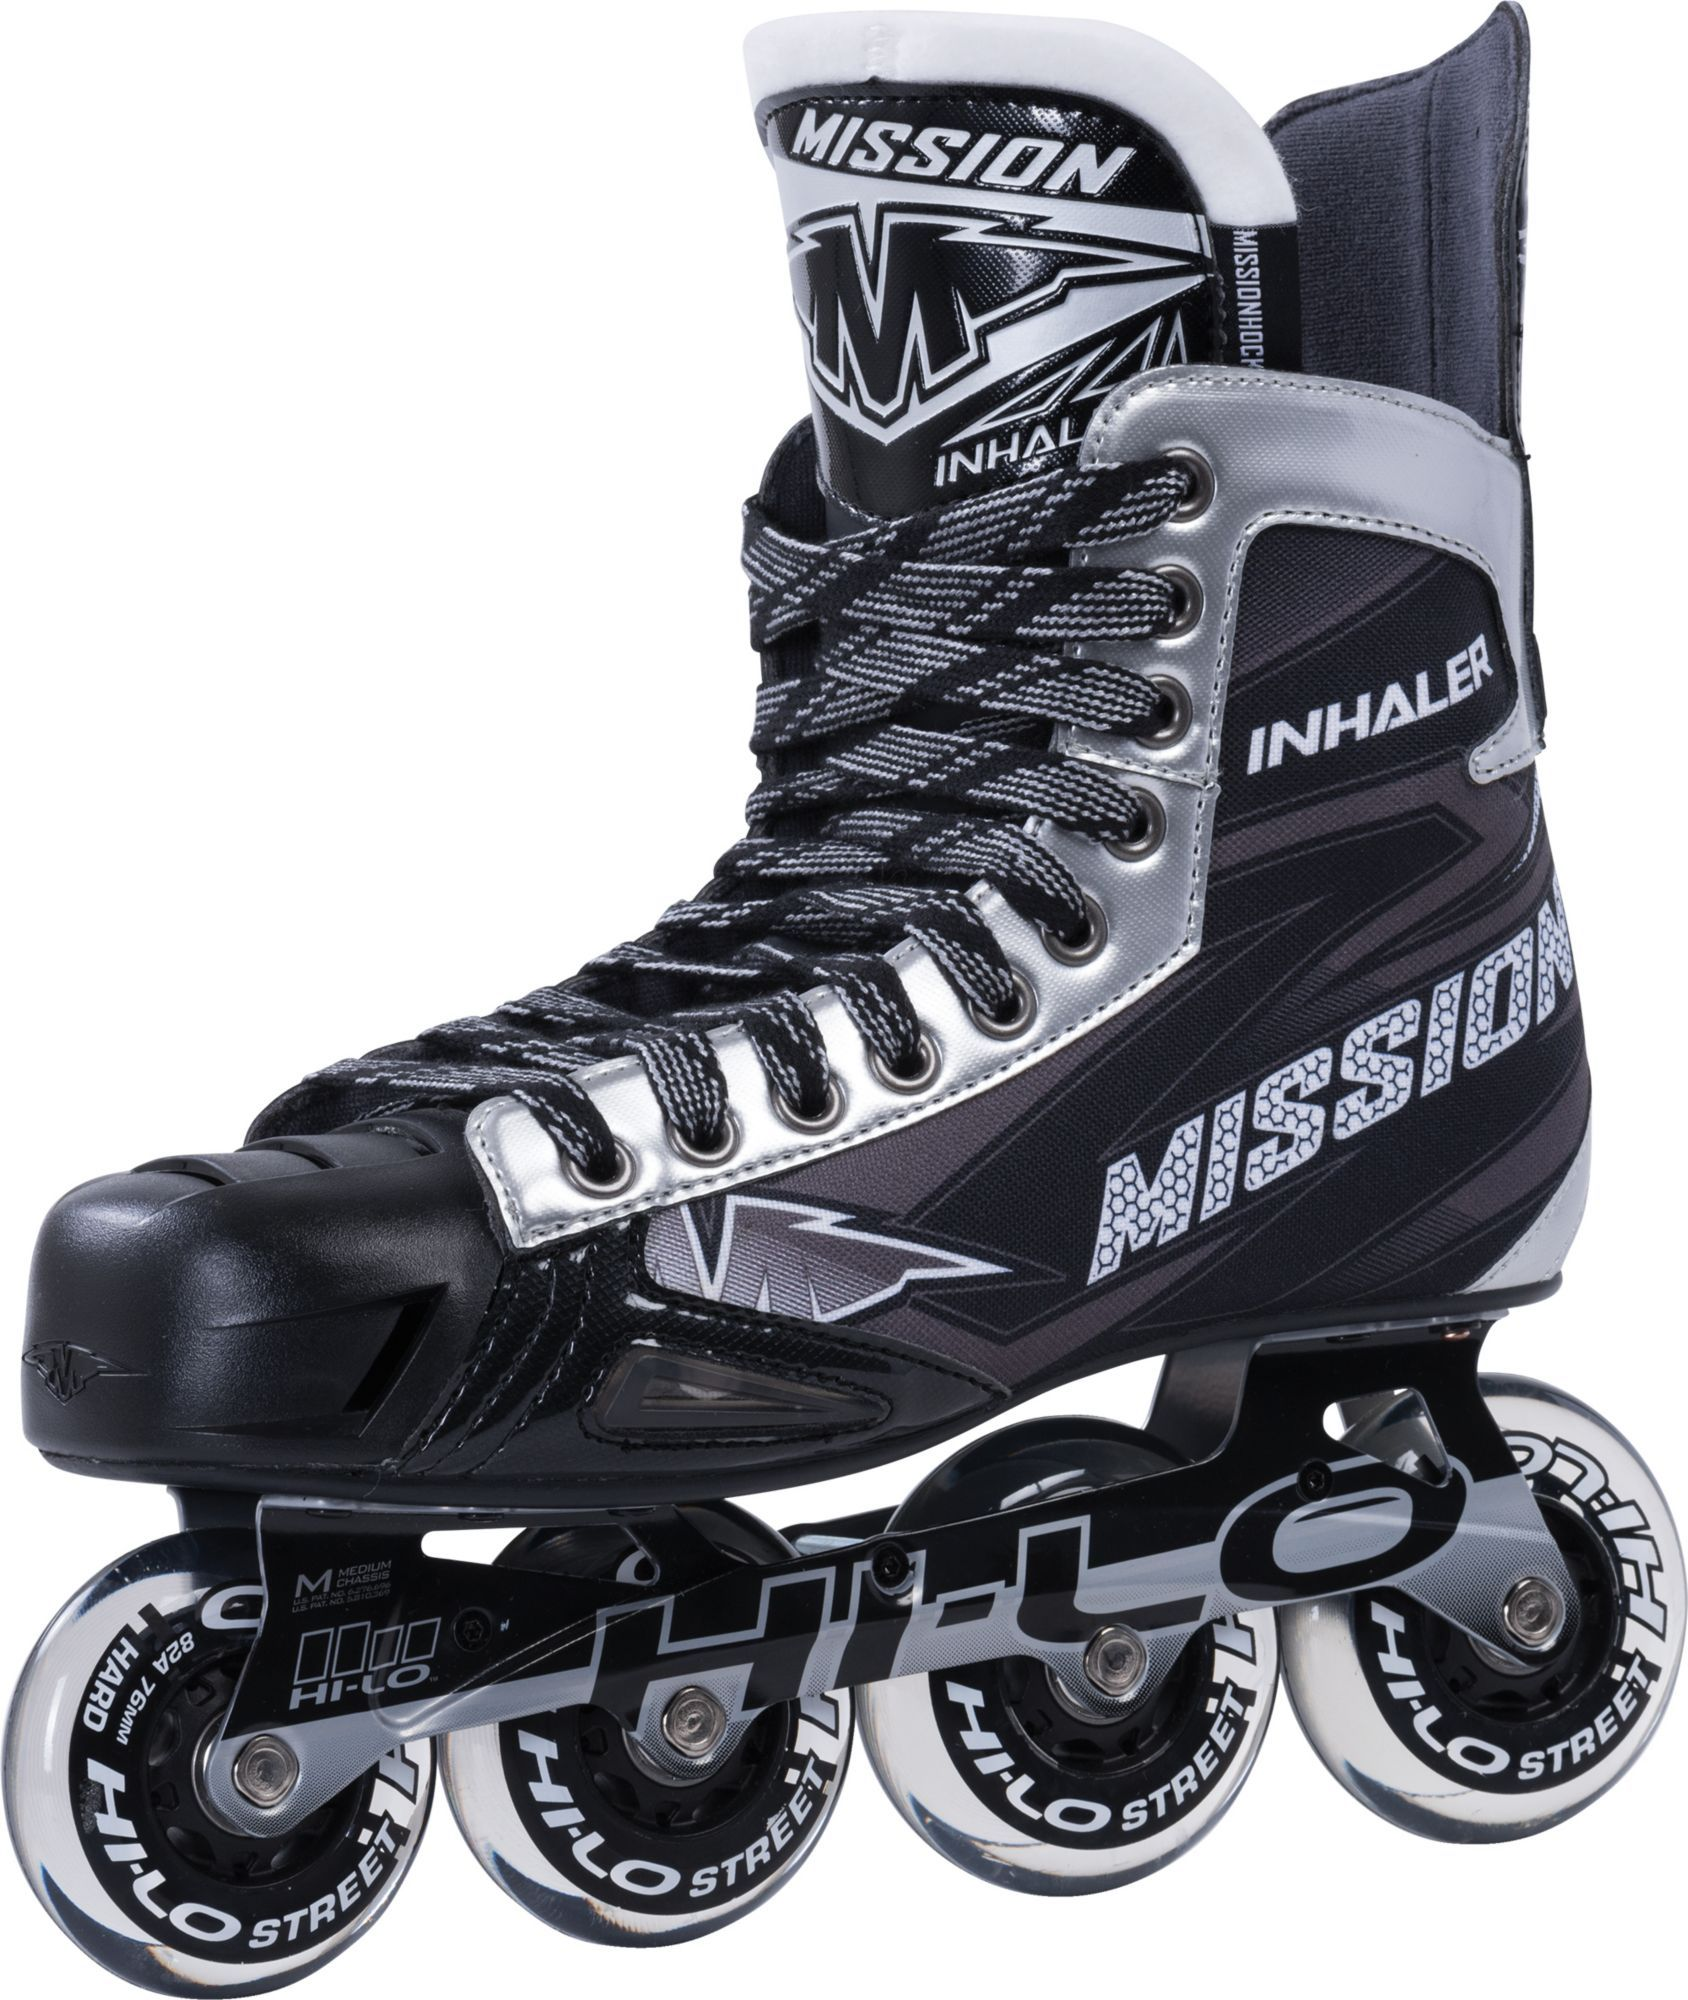 Mission Junior Inhaler Nls6 Roller Hockey Skates Kids Unisex Size 4 In 2020 Roller Hockey Skates Inline Hockey New Skate